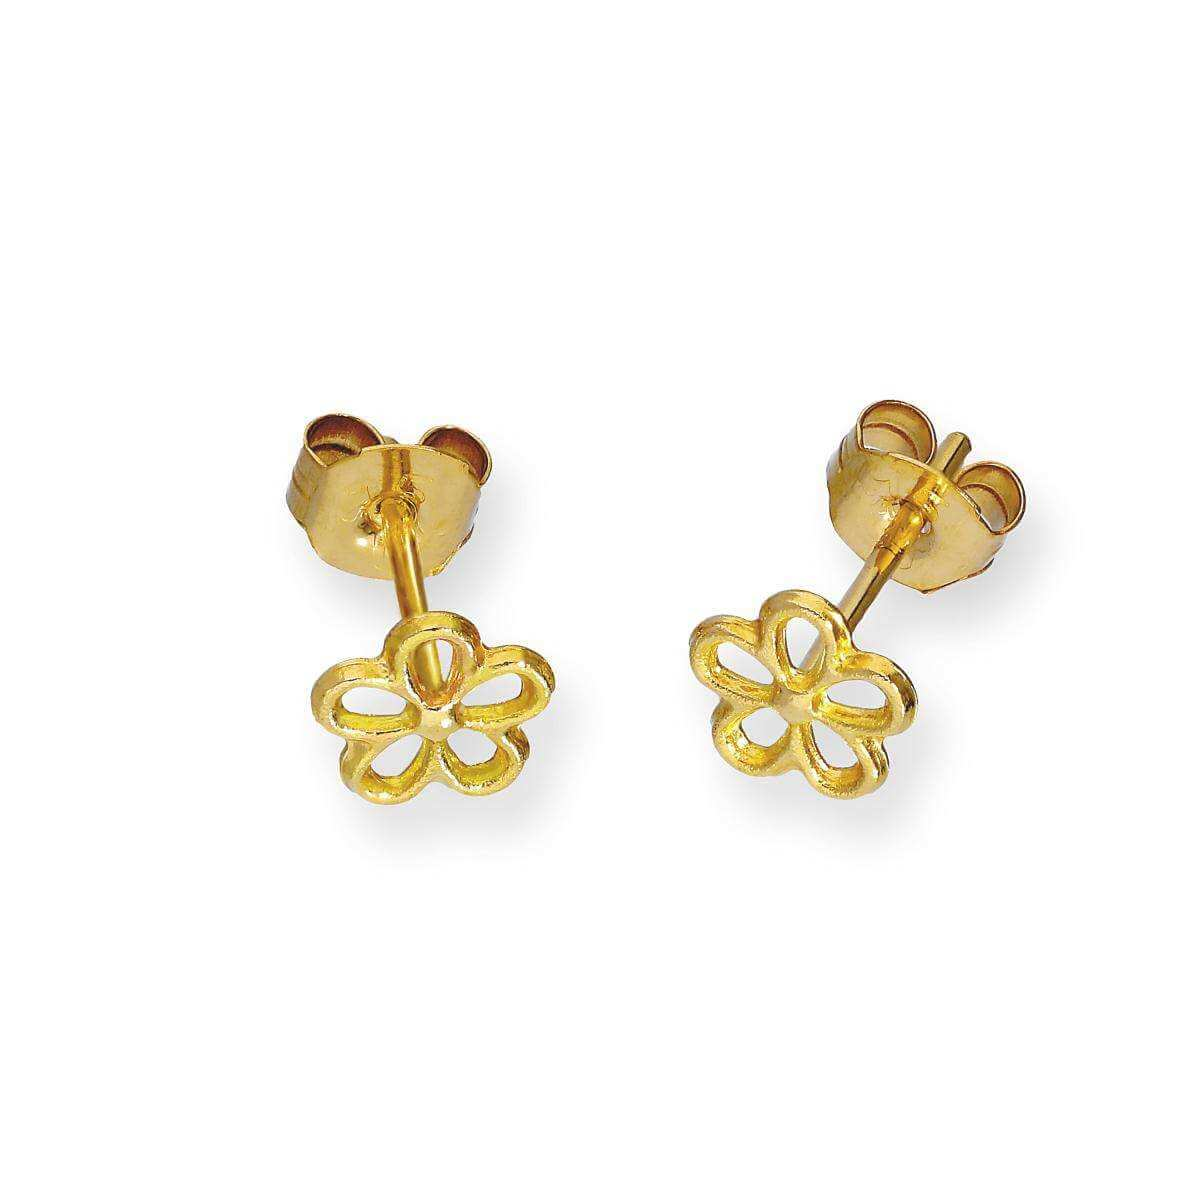 9ct Gold Open Flower Stud Earrings